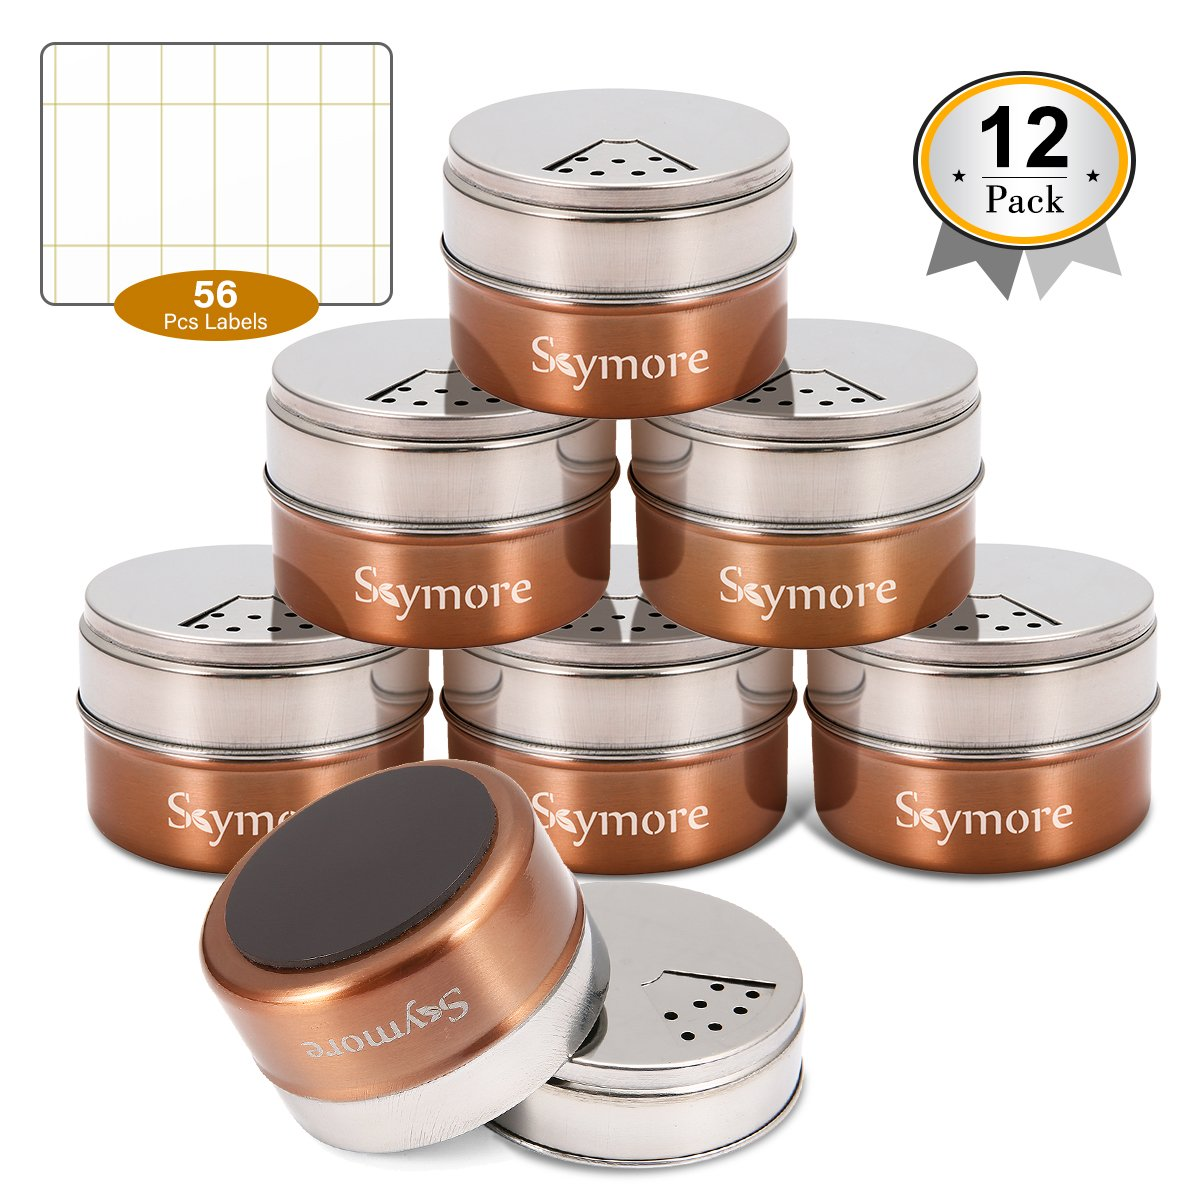 Skymore 12 Pcs Magnetic Spice Tins, Stainless Steel Jar, kitchen spice storage containers, Round Storage Containers with Top Lid with Sift or Pour,Stickers, Great for For Salt, Pepper or Seasoning